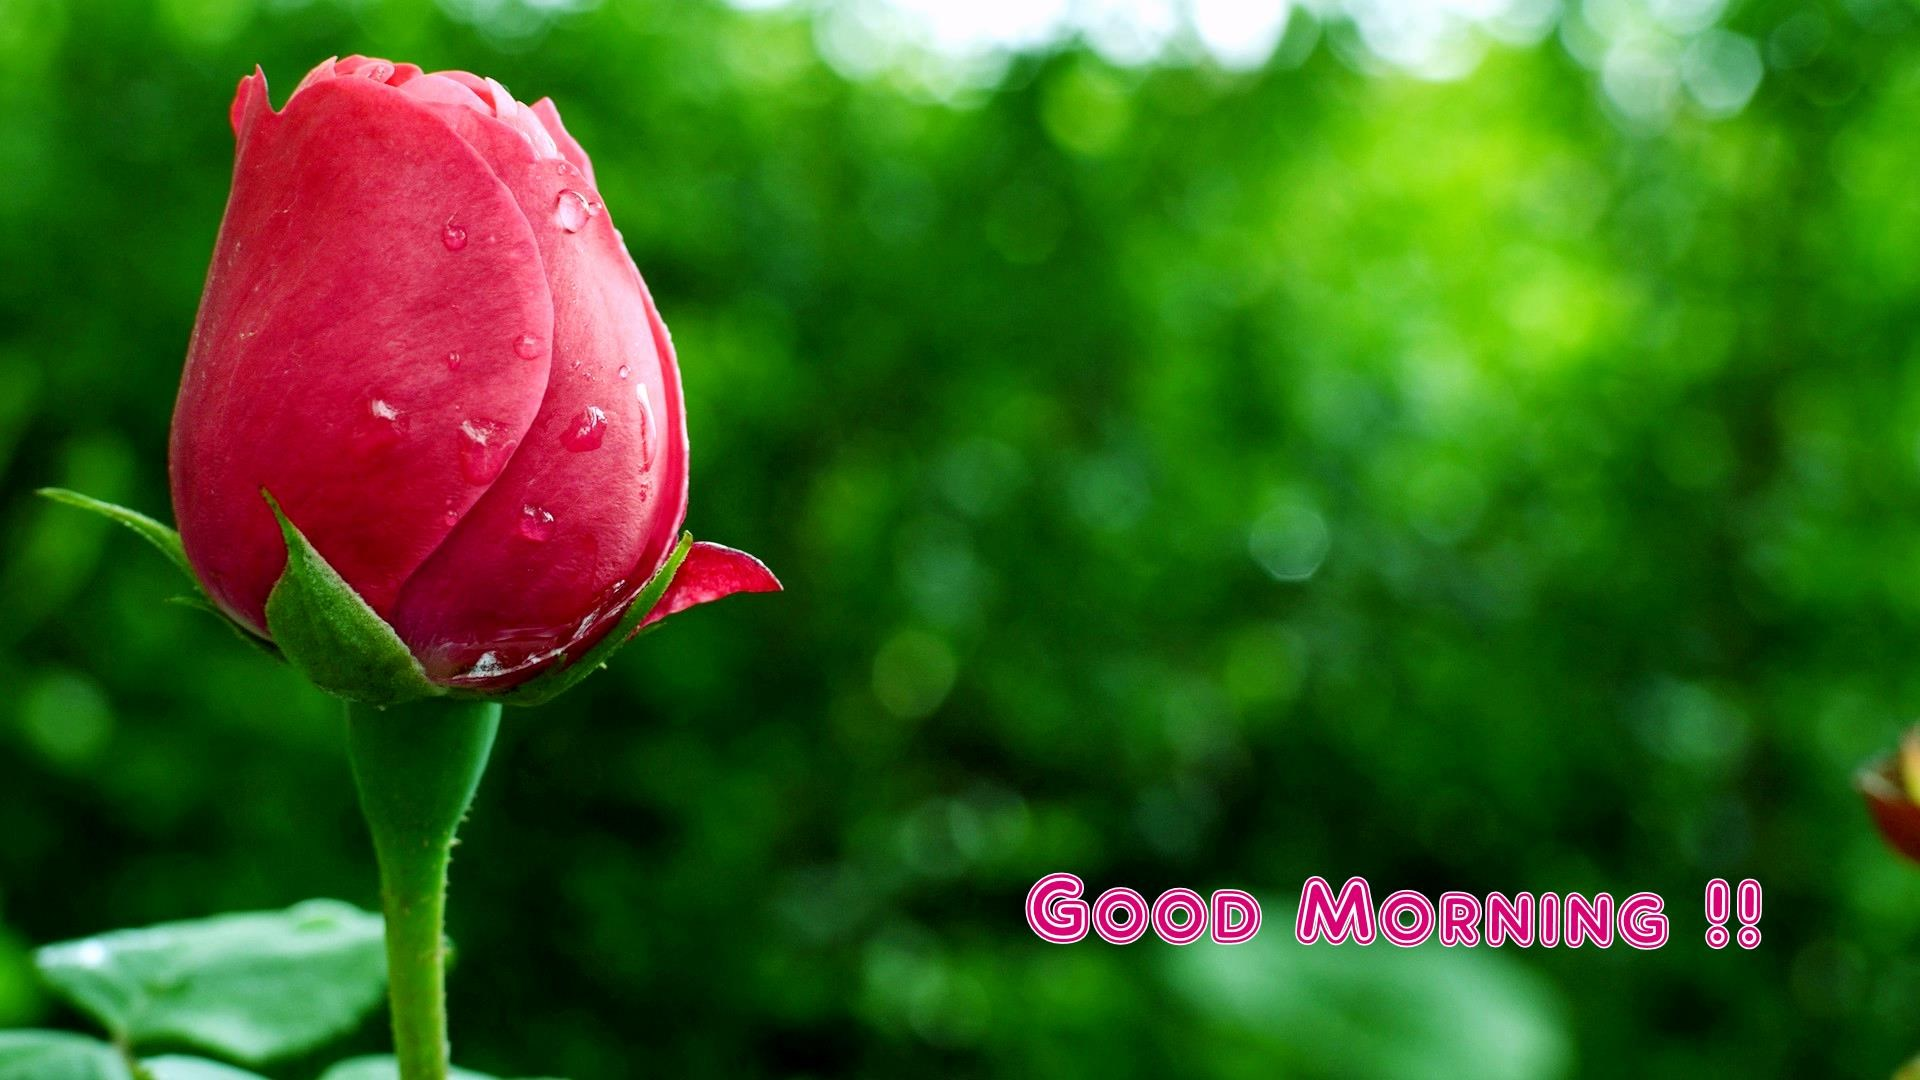 1920-x-1080-px-rose-pic-free-by-Sunday-Blare-wallpaper-wp360736